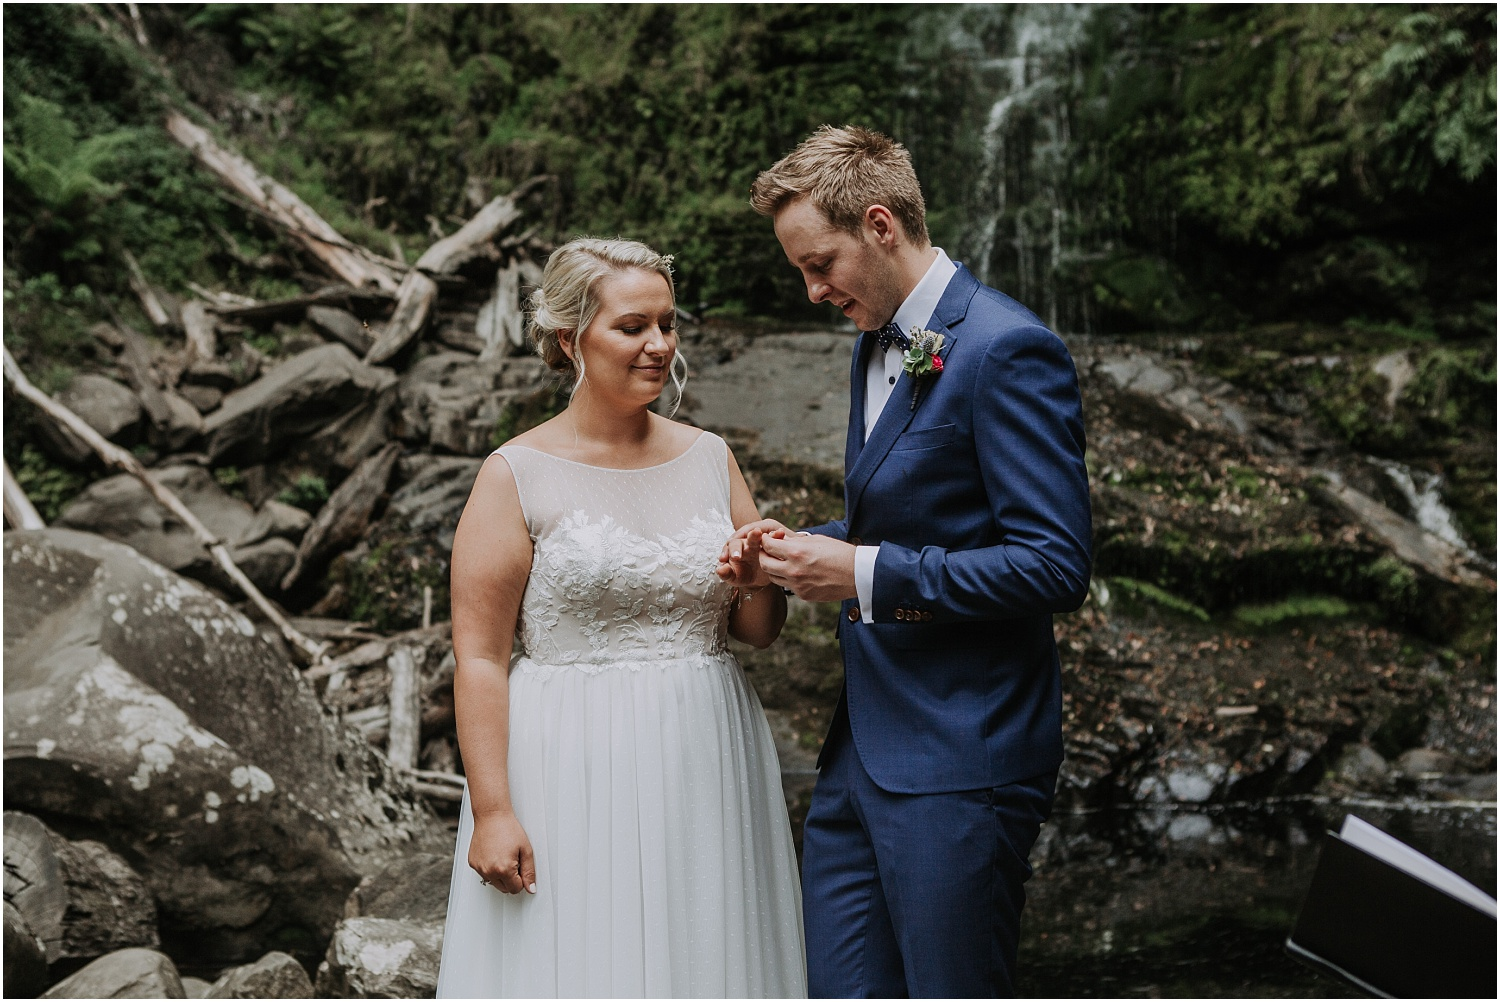 Ainslee and Warwick's elopement at Erskin Falls and the Lorne Beach Pavilion on the Great Ocean Road._0061.jpg